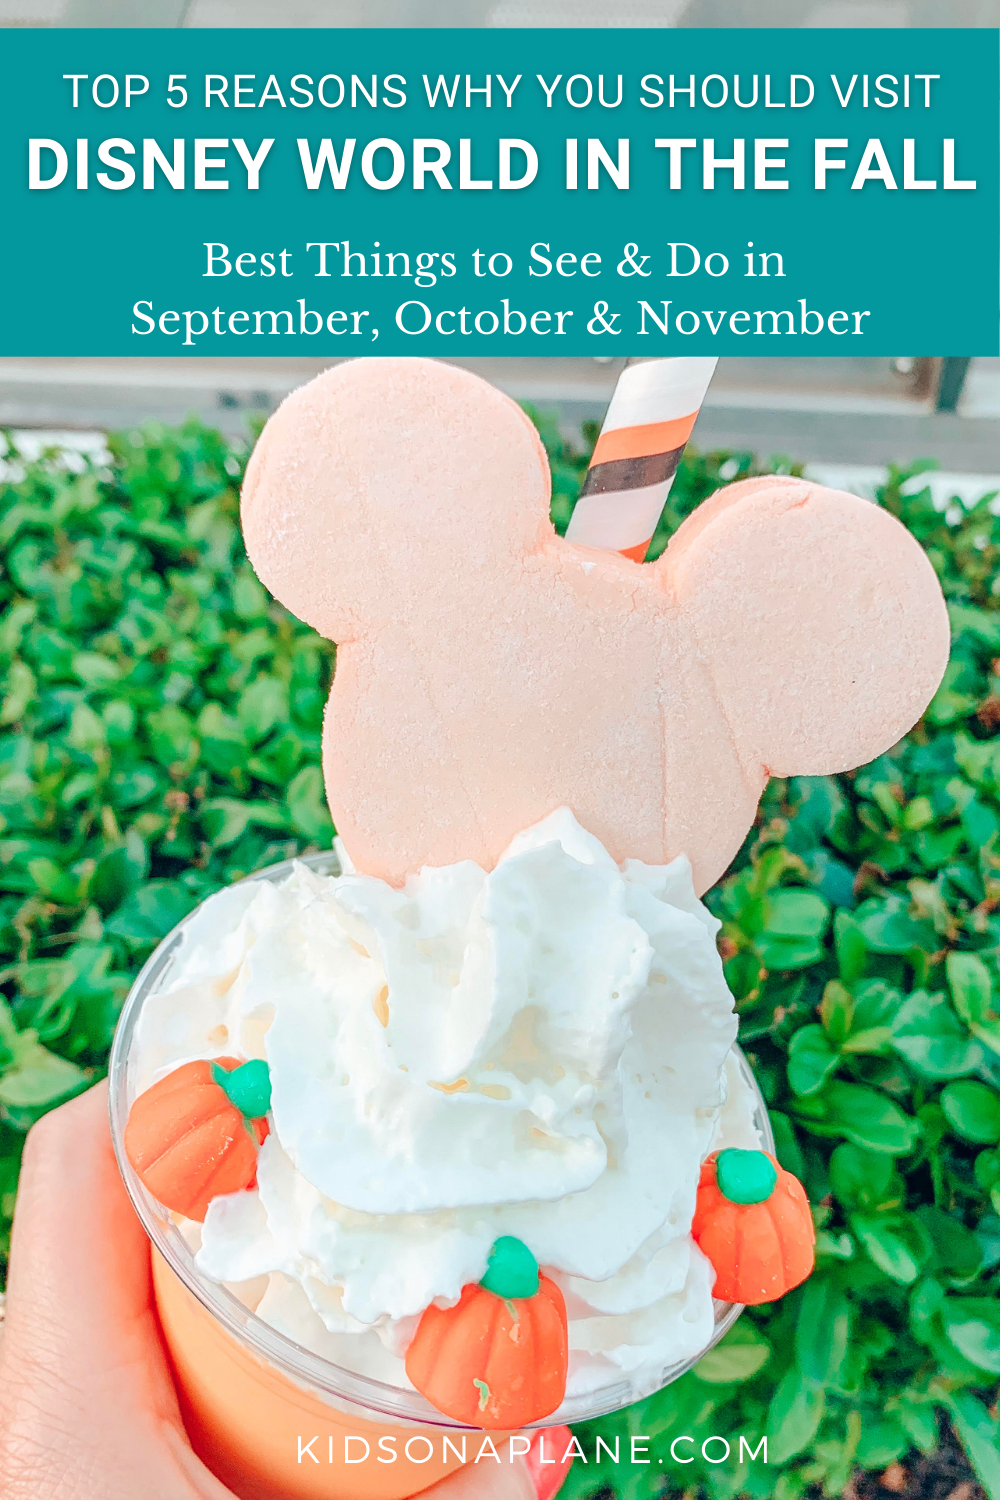 Reasons to Visit Disney World in the Fall - Best Things to See and Do in August September October November